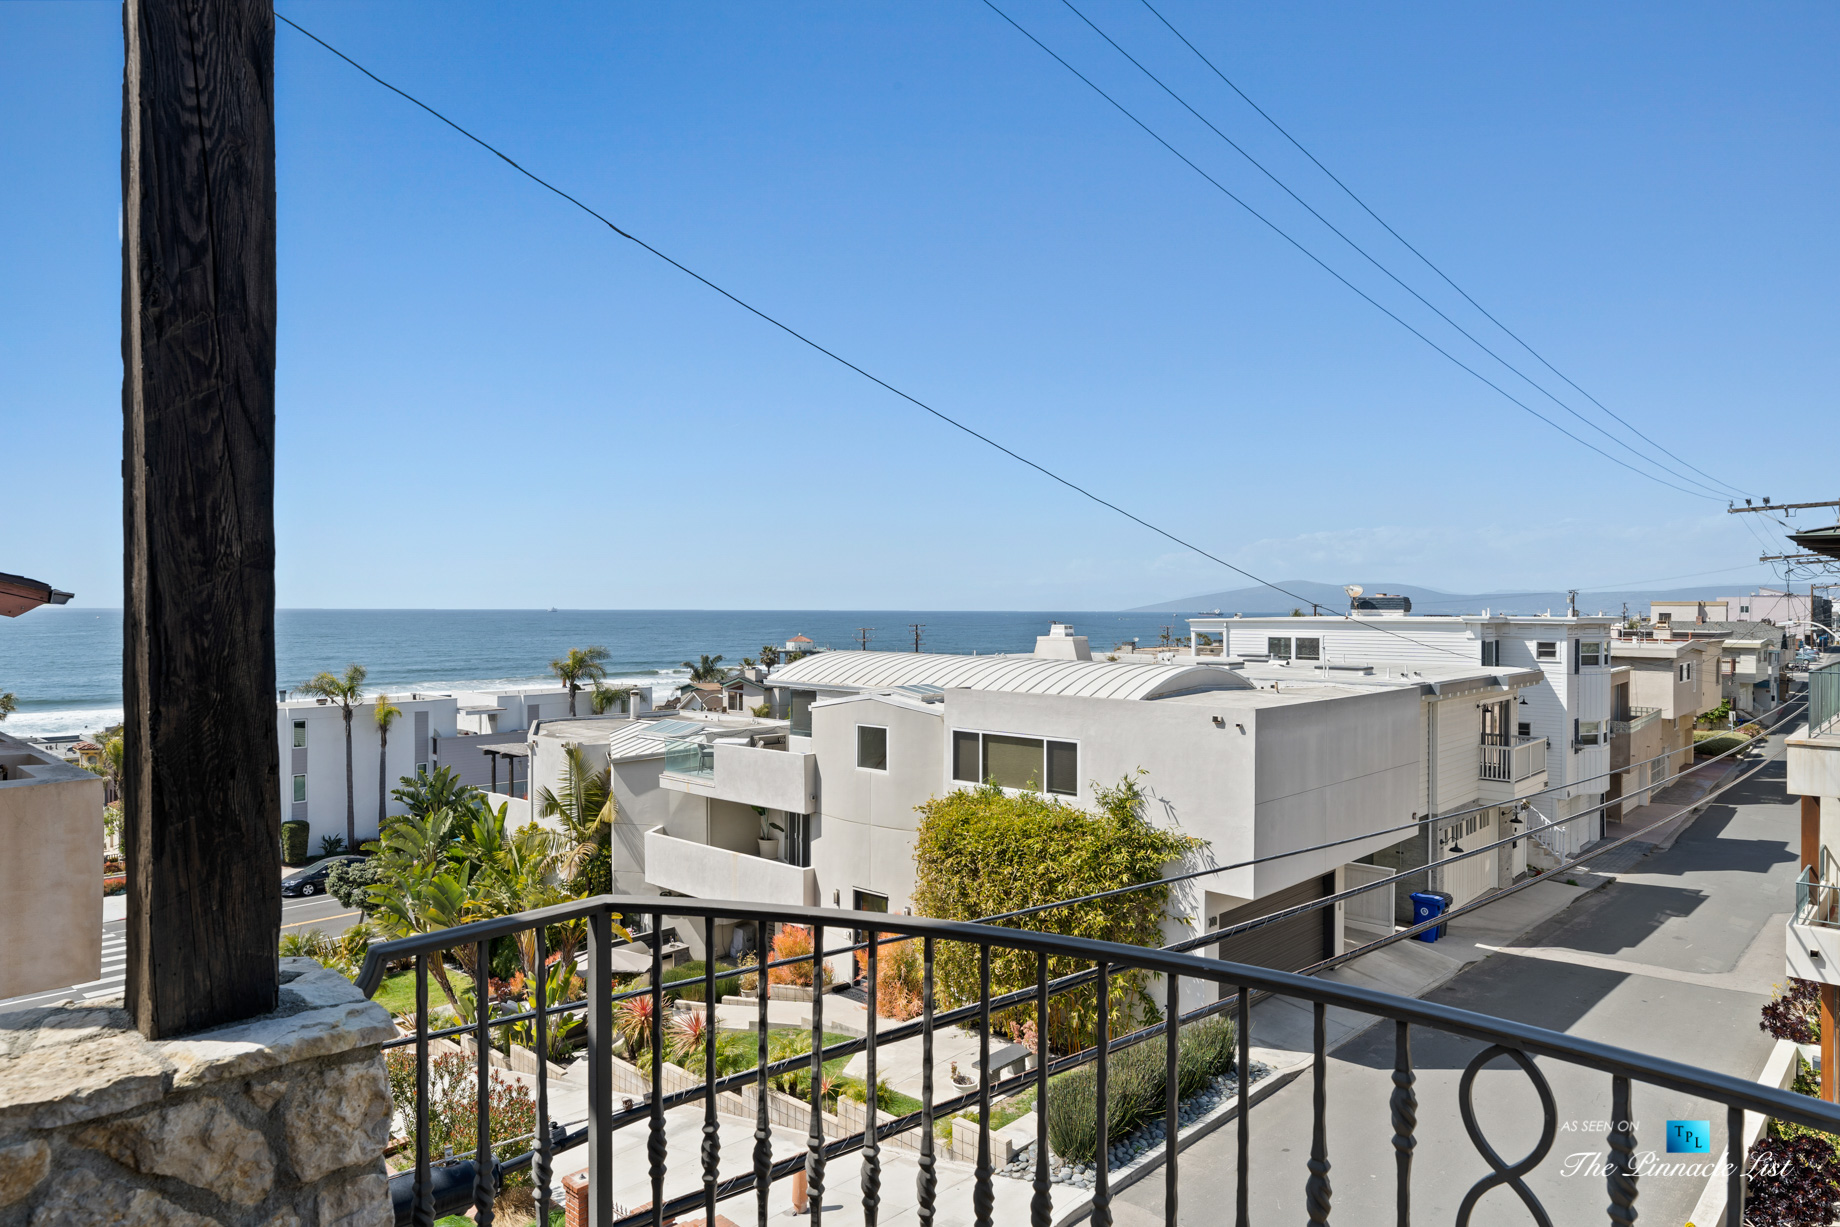 216 7th St, Manhattan Beach, CA, USA – Luxury Real Estate – Coastal Villa Home – Balcony Oceanview